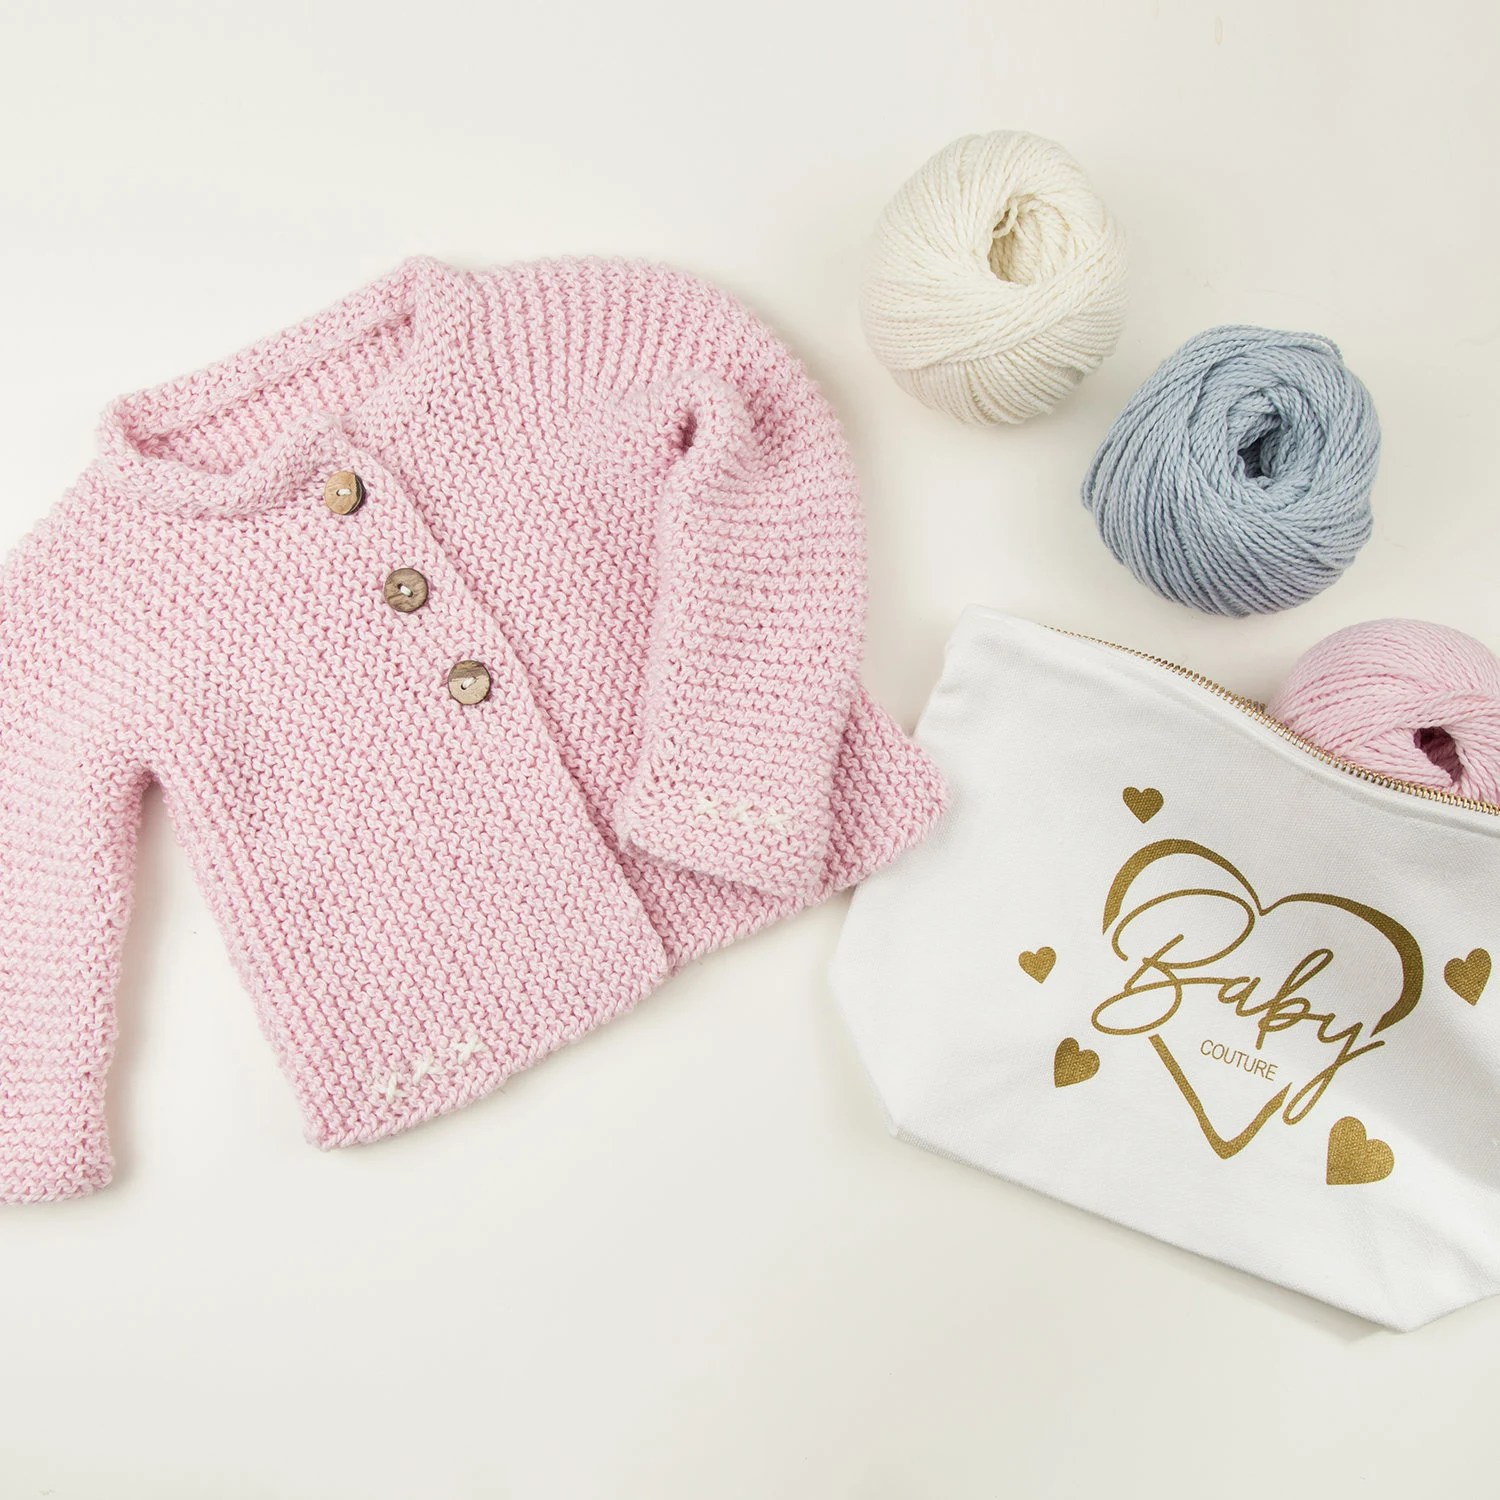 8adab7792 Lilly Cardigan Baby Knitting Kit Toddler Hand Knit Cardi Pattern For Babies  And Toddler 24months Easy Knit Kit 5 Sizes On One Pattern